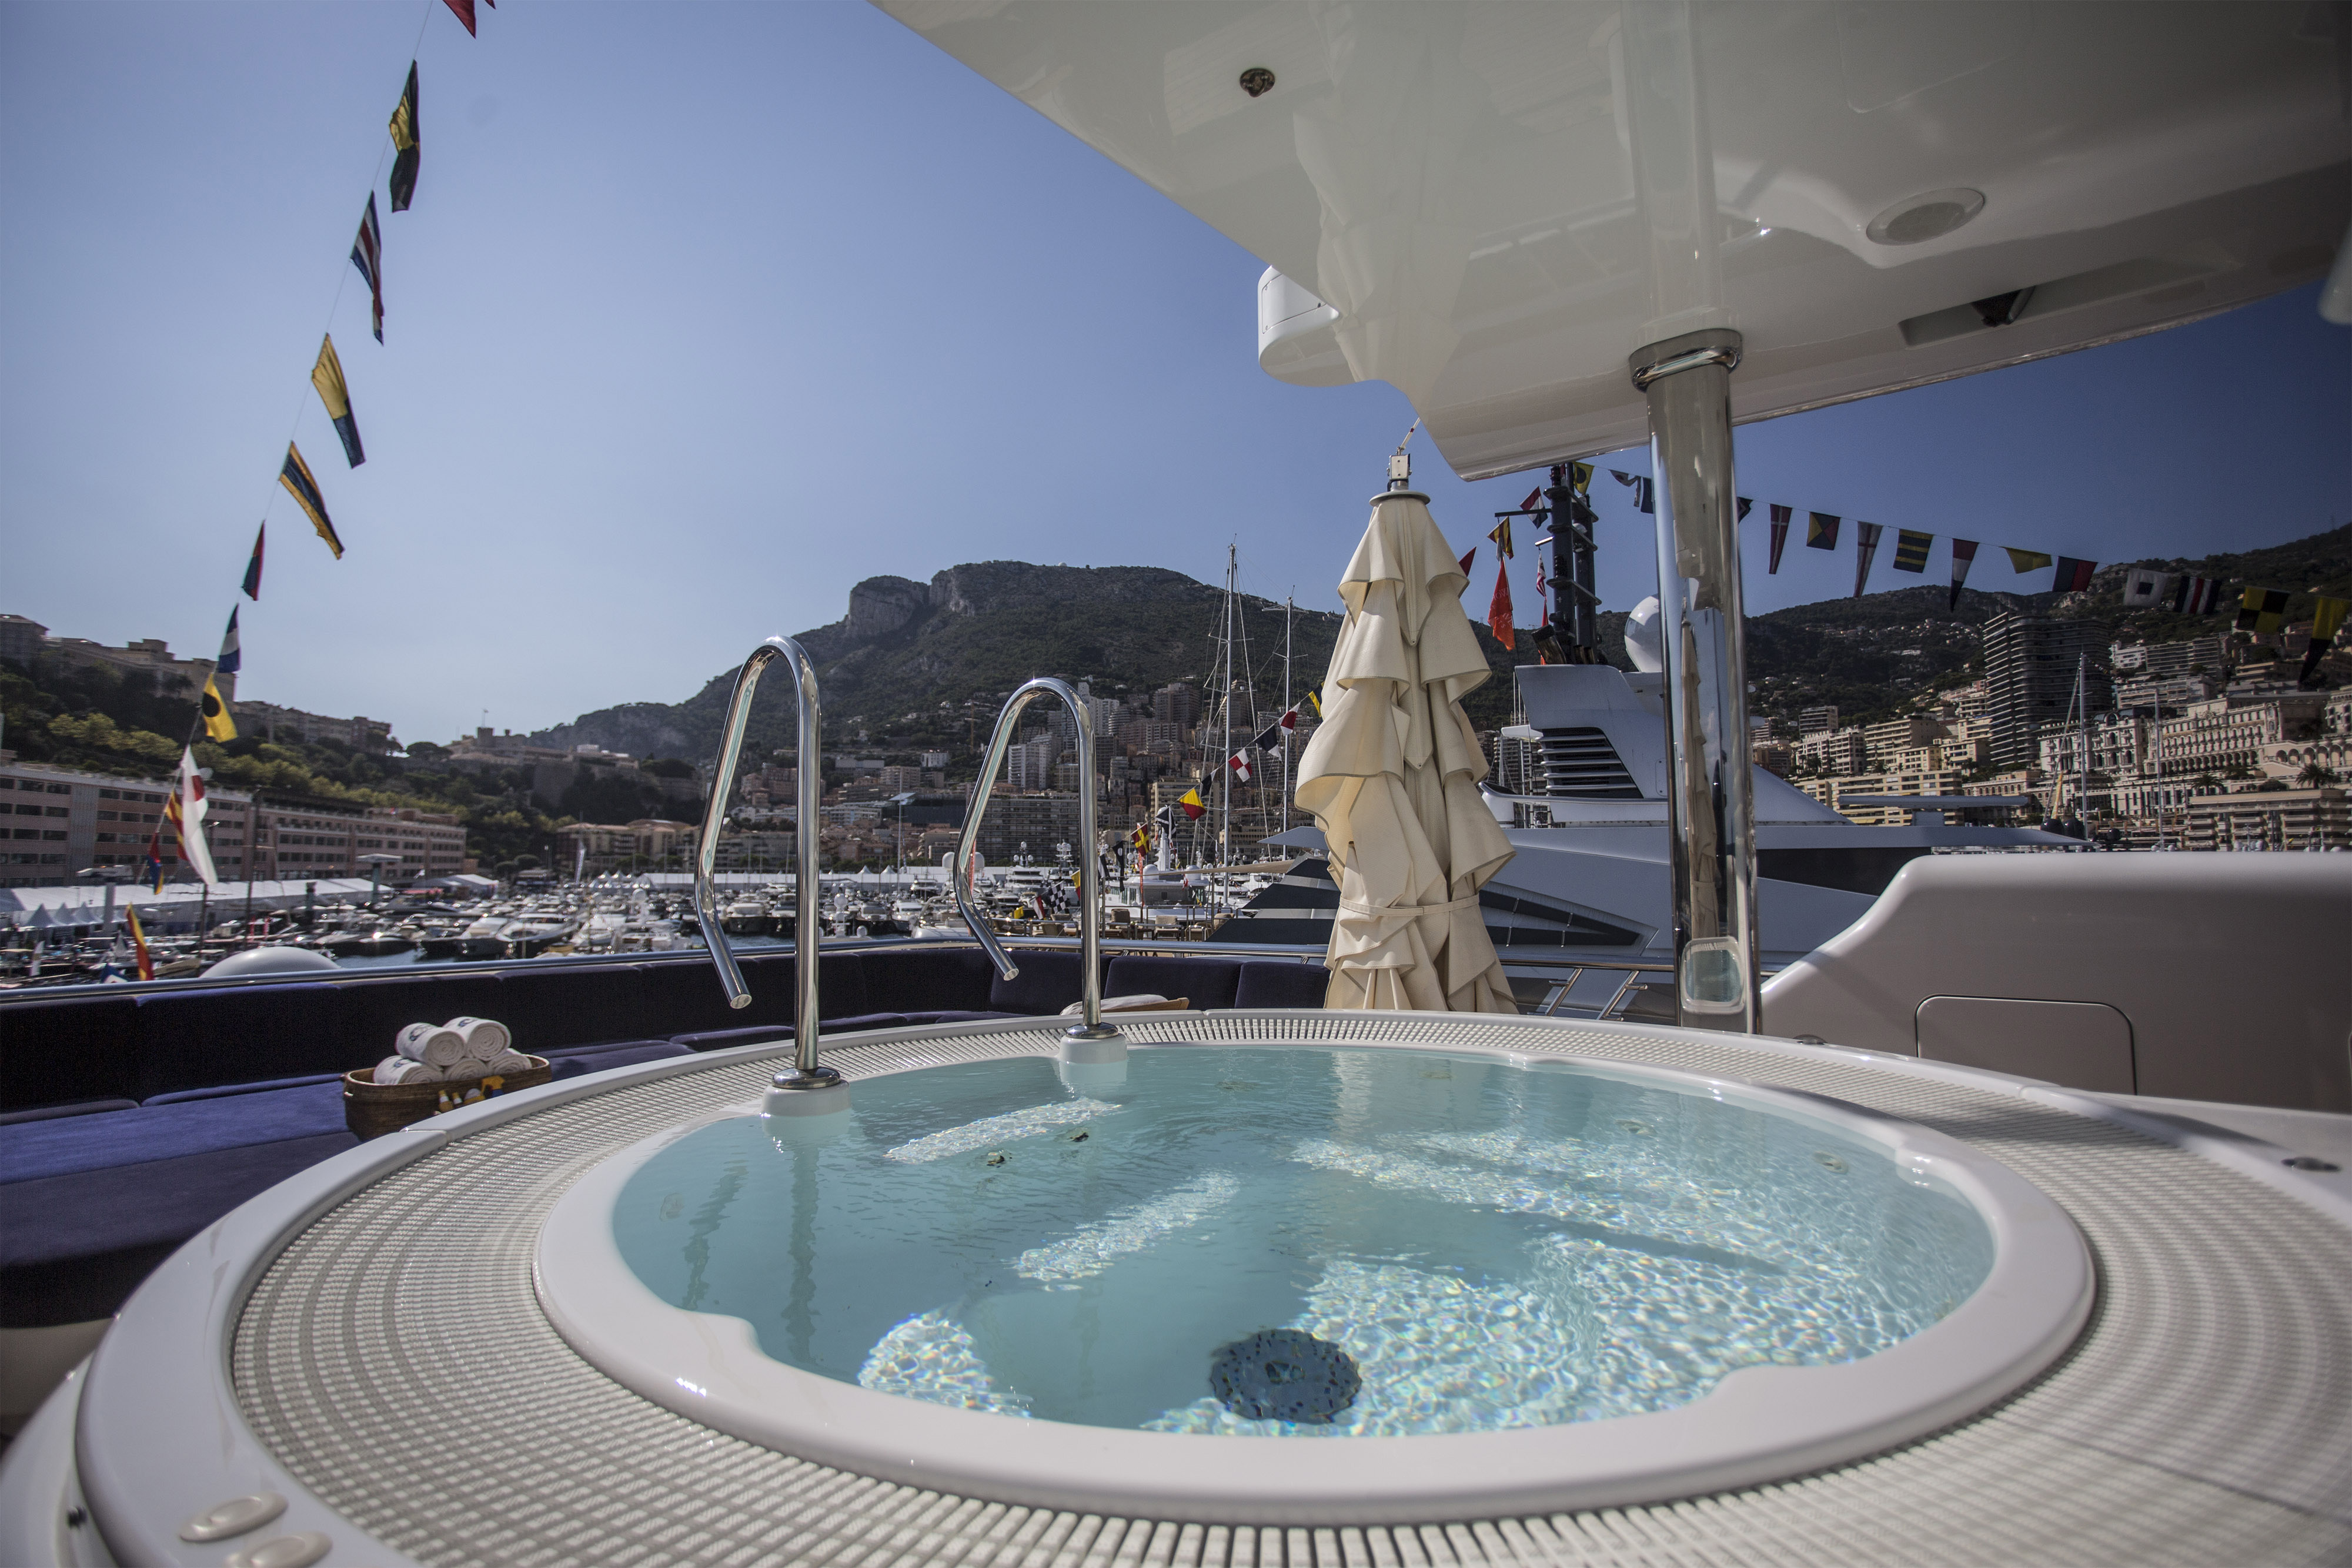 Luxury Yachts At The 2015 Monaco Yacht Show